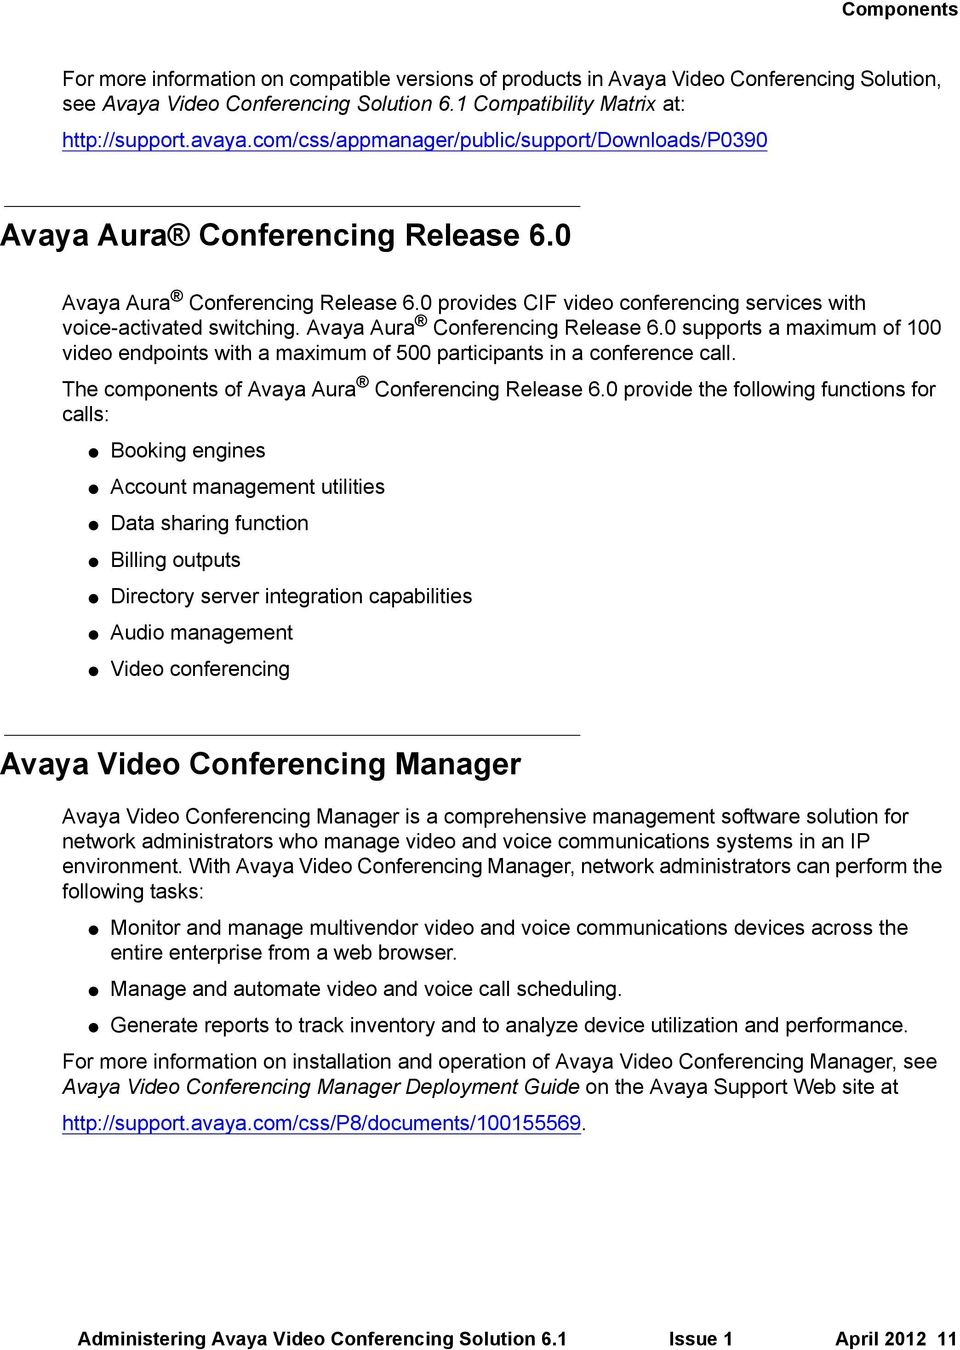 Avaya Aura Conferencing Release 6.0 supports a maximum of 100 video endpoints with a maximum of 500 participants in a conference call. The components of Avaya Aura Conferencing Release 6.